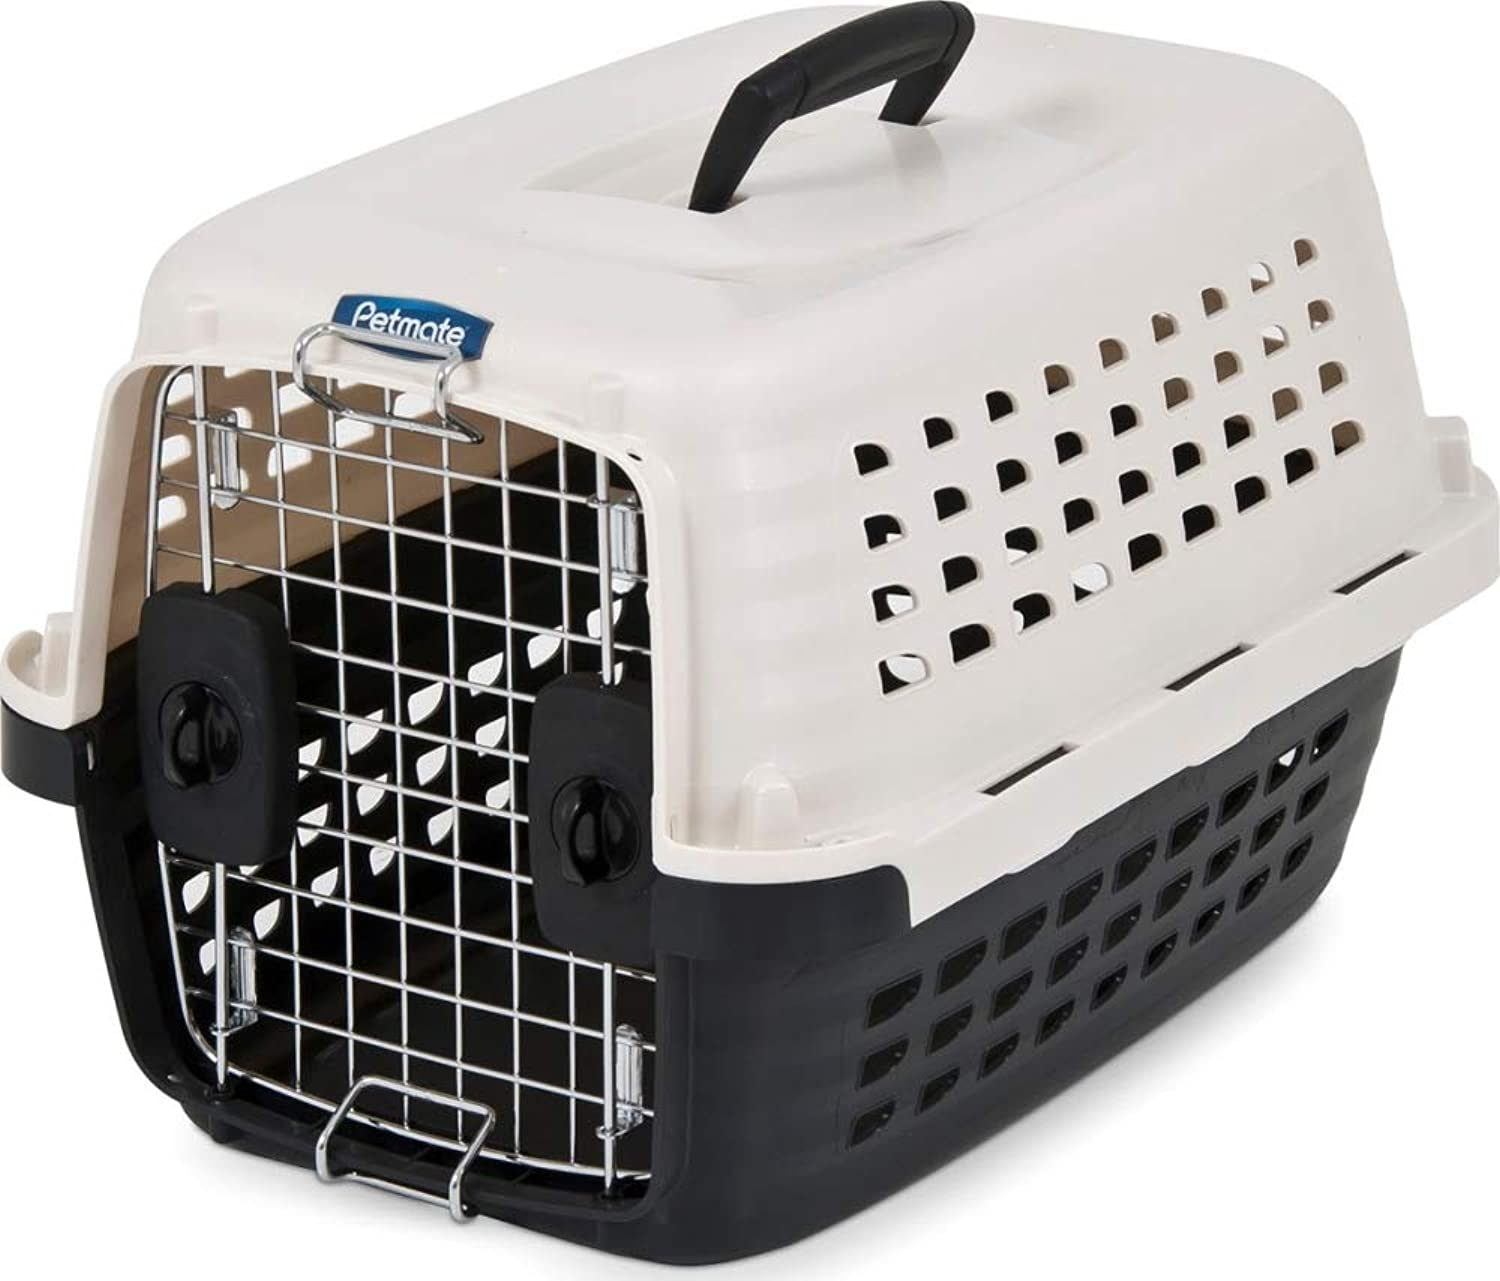 Petmate 41031 Compass Plastic Pets Kennel with Chrome Door, Metallic White Black